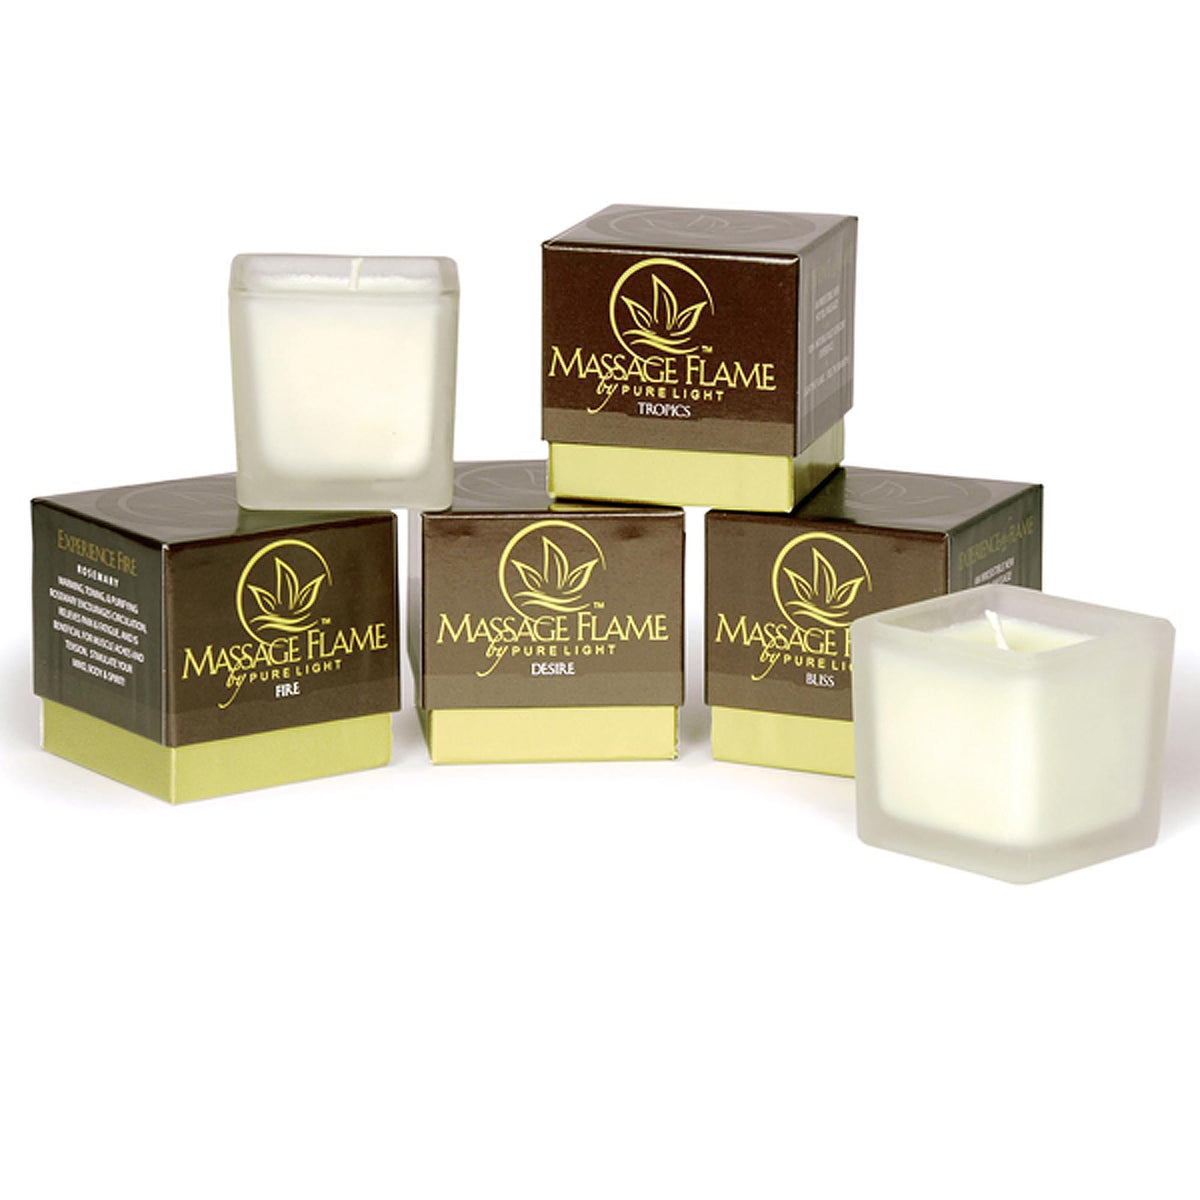 Pure Light Desire Massage Flame Candle